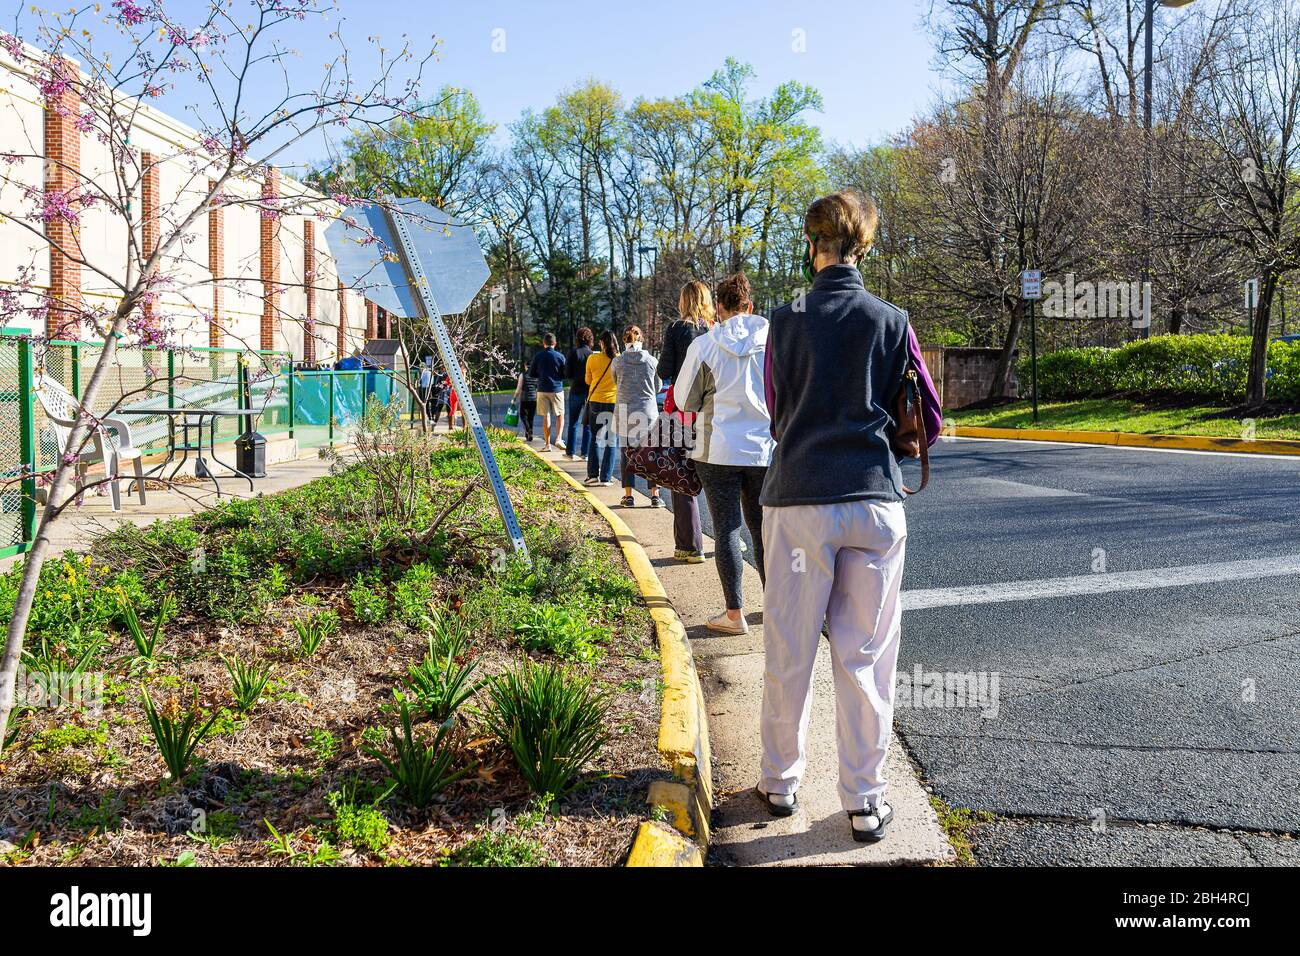 Reston, USA - April 9, 2020: Social distancing of people waiting in line queue by Trader Joe's grocery shop due to limit for customers in store during Stock Photo